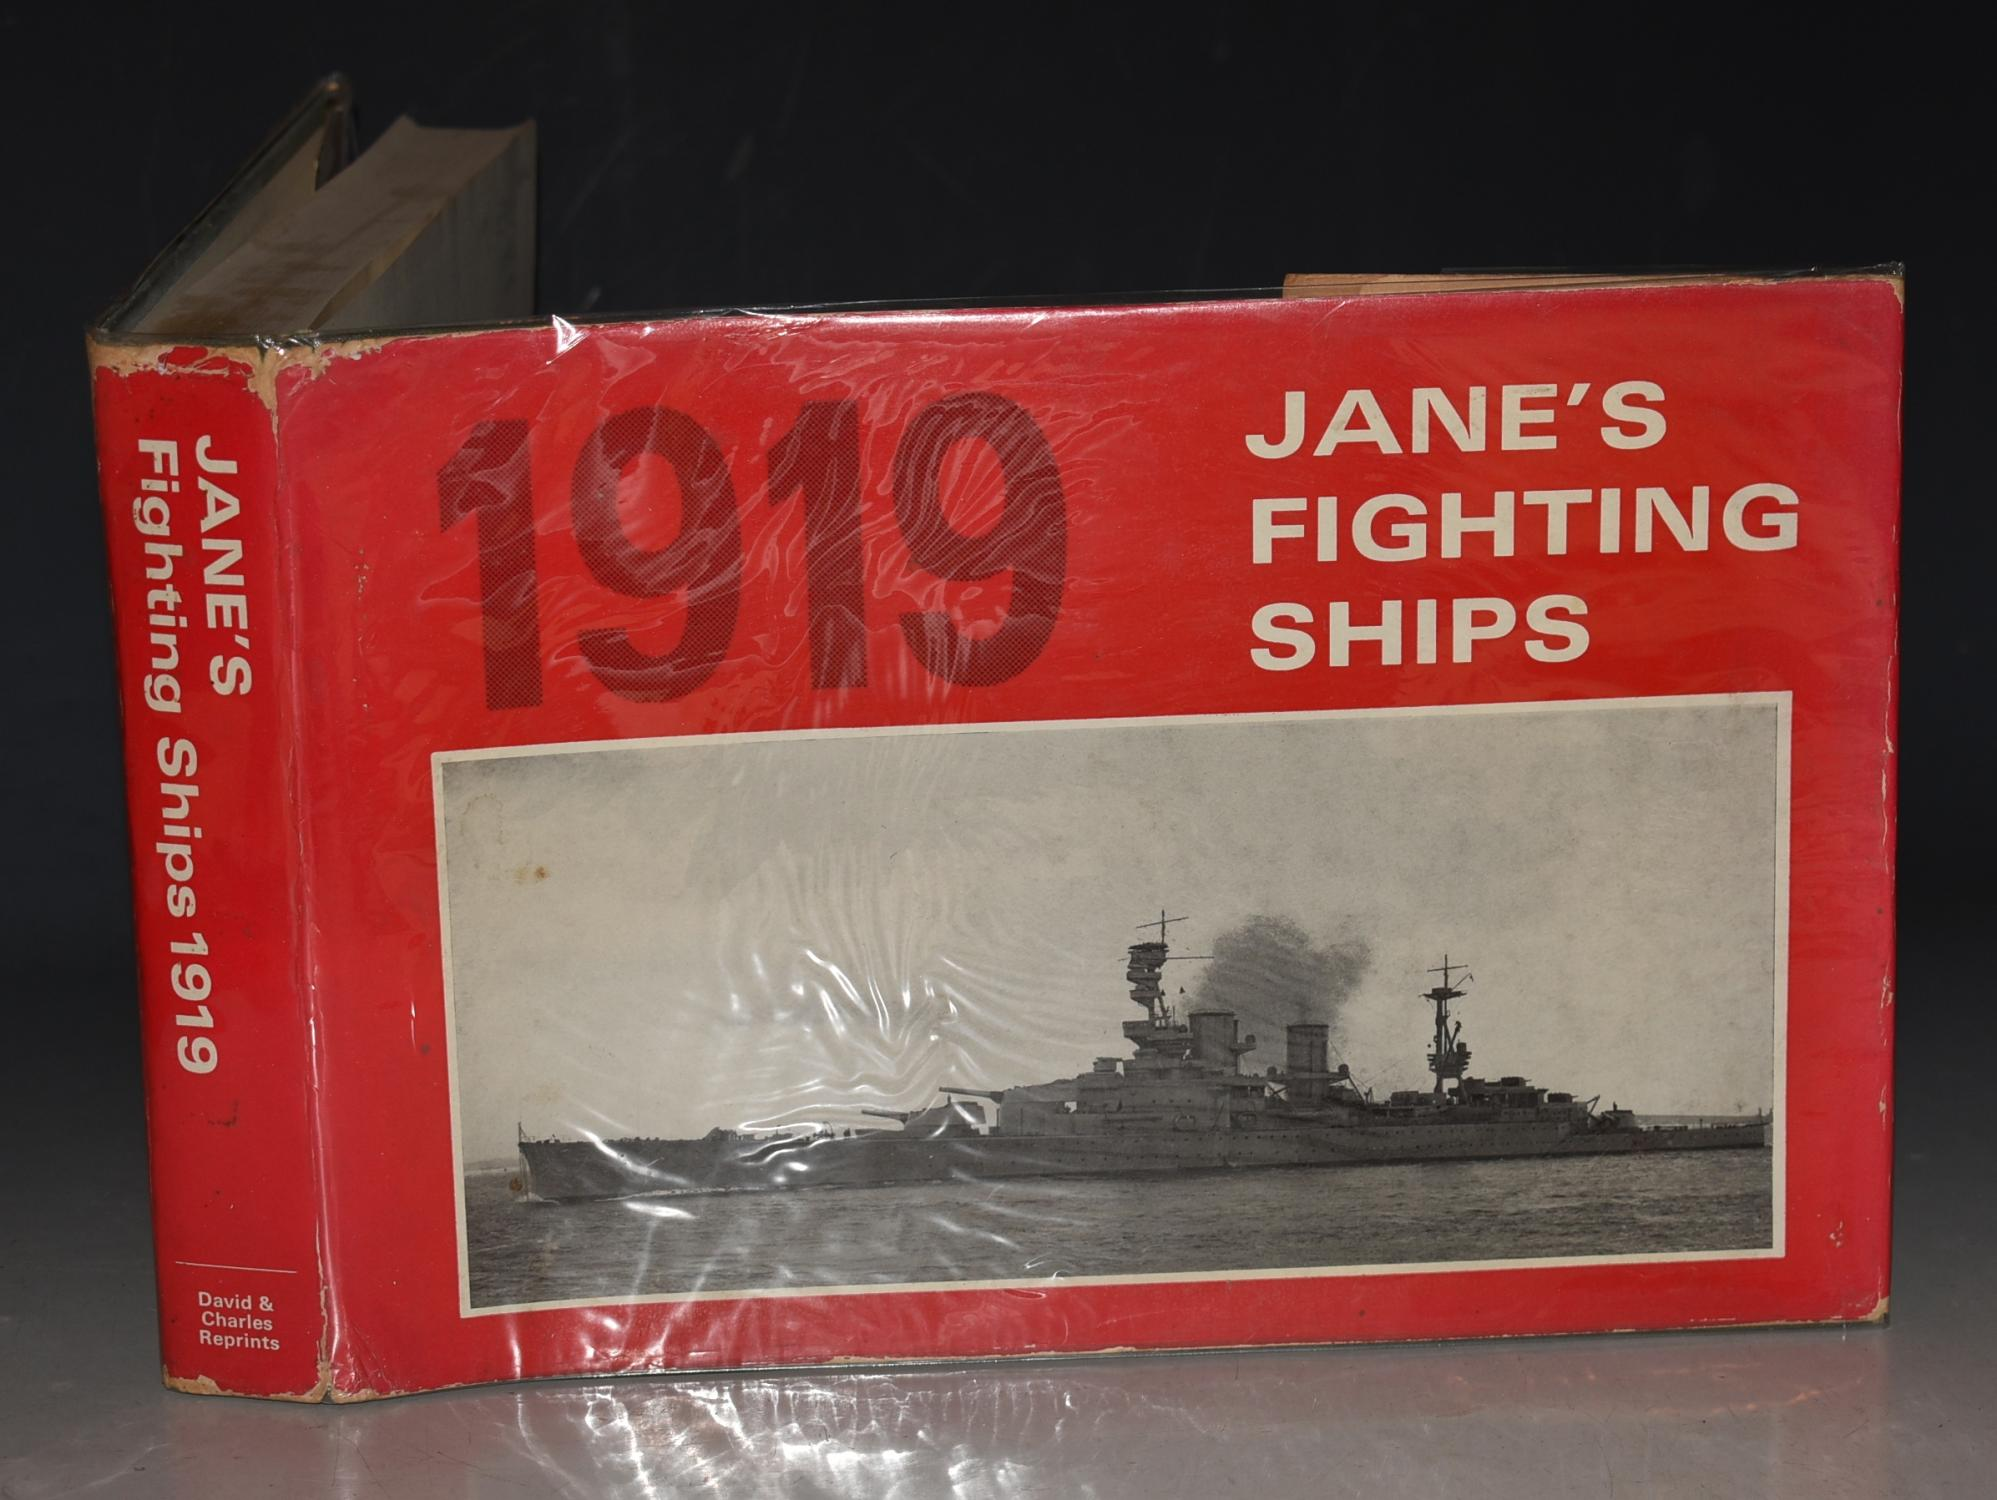 Jane's Fighting Ships 1919 A Reprint of the 1919 Edition of Fighting Ships. Including a chapter on the Progress of Marine Engineering by Charles De Grave Sells.